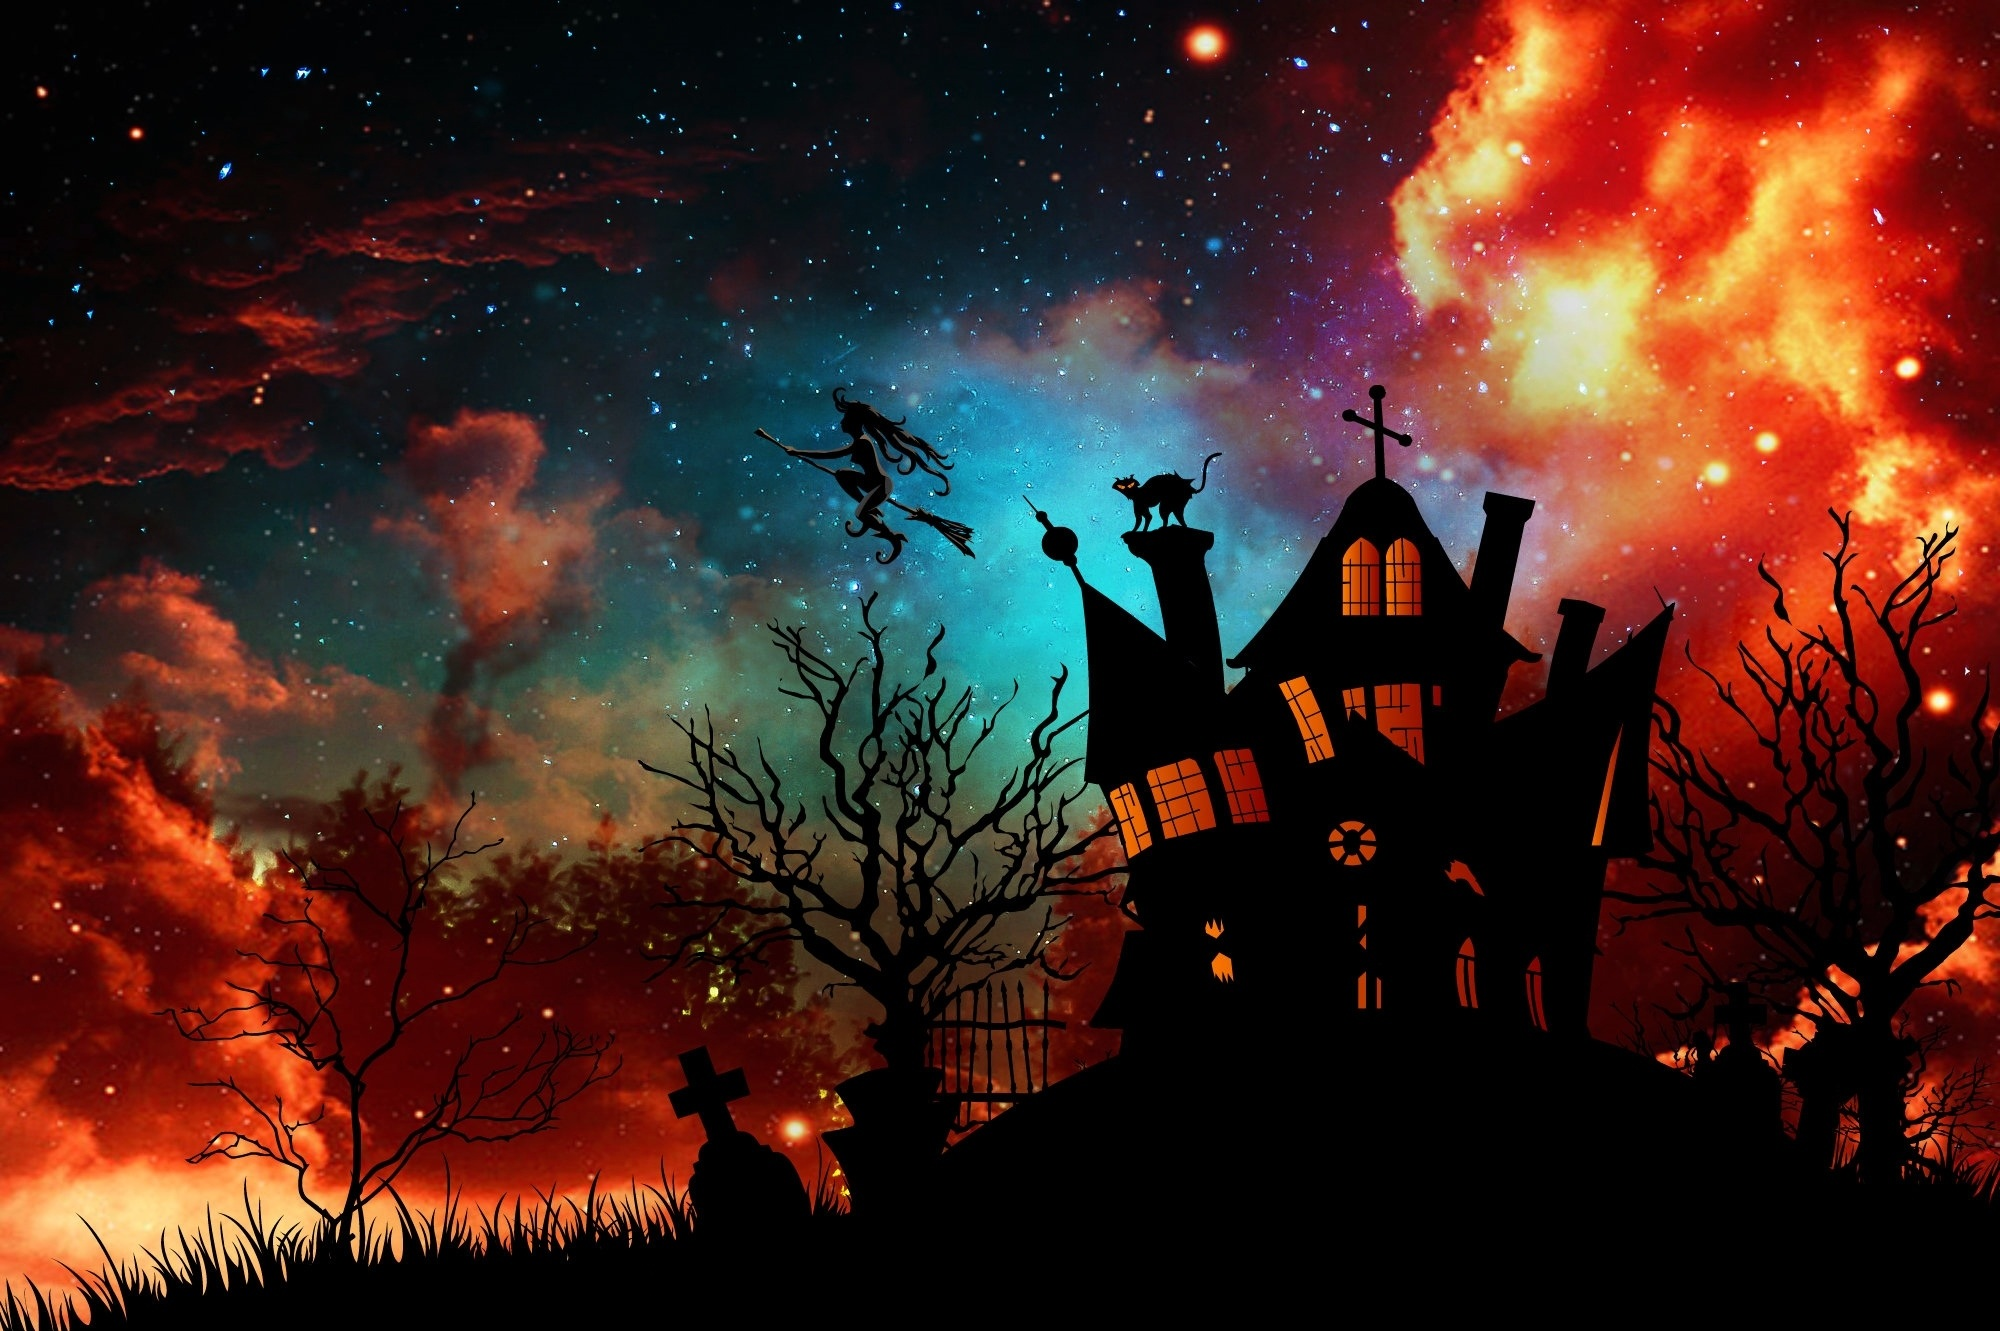 Witch house photo